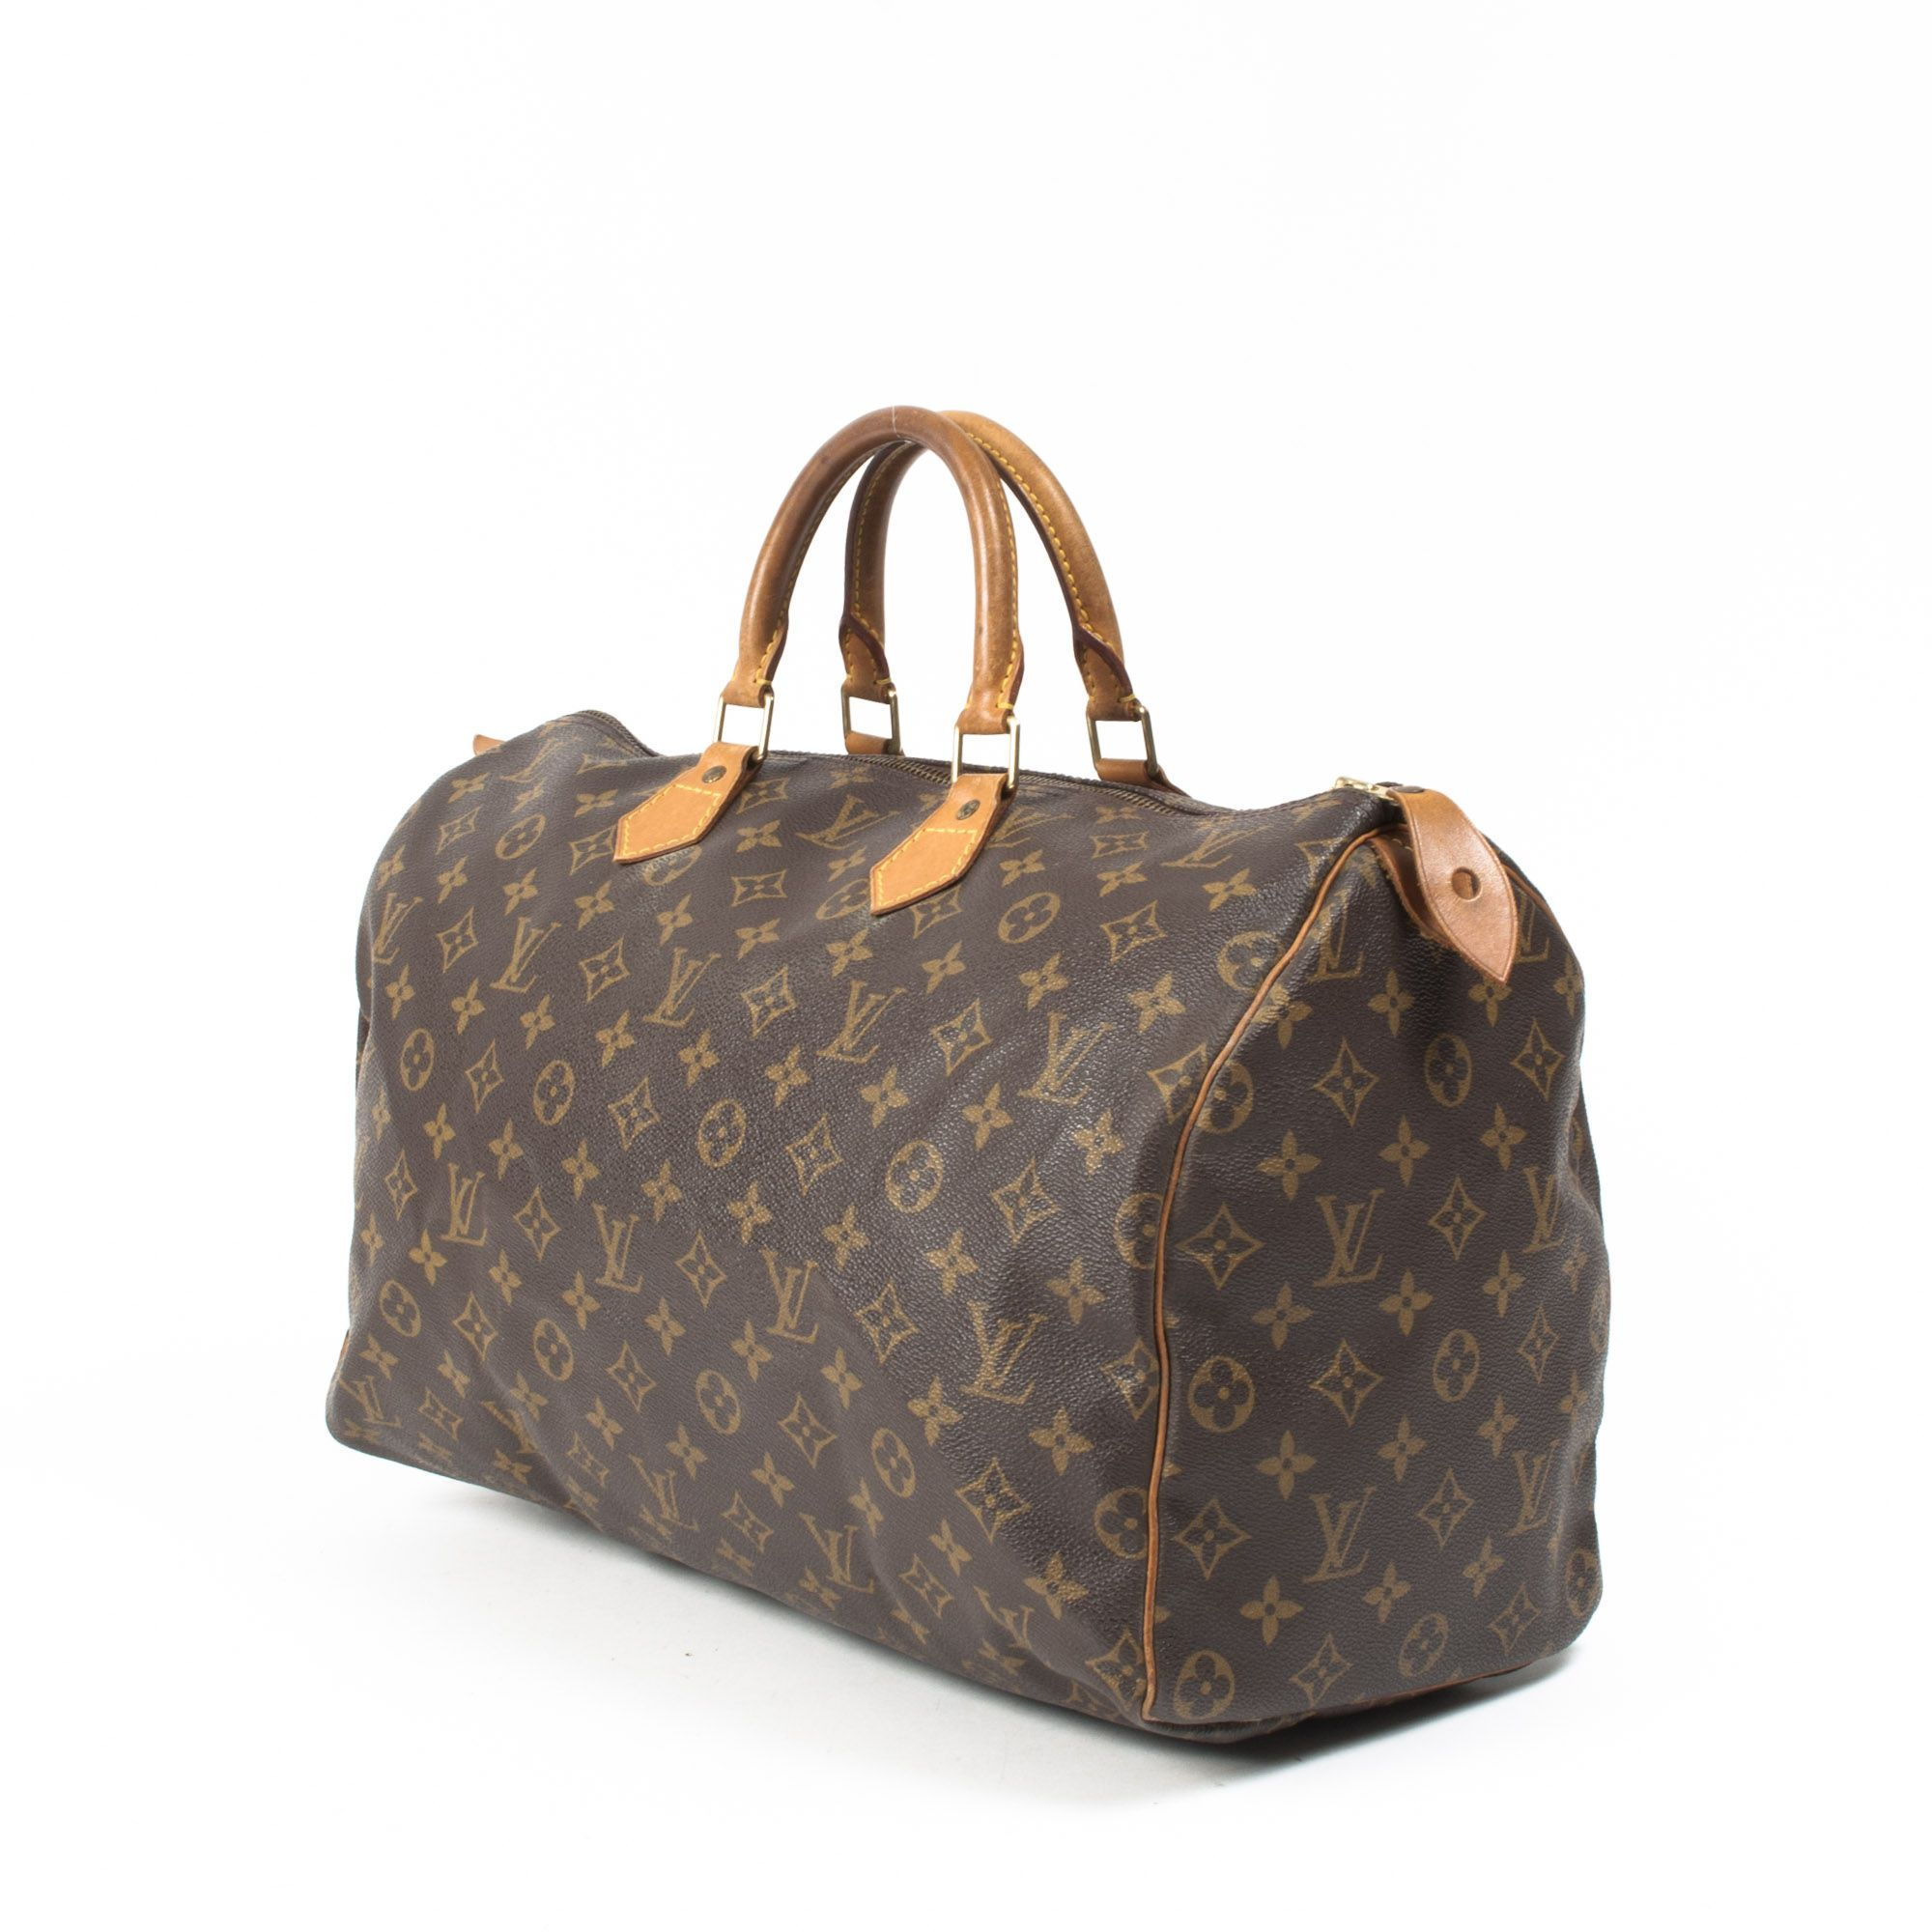 cecc22a66e Discover luxury vintage at LXRandCo. Shop our latest collections and save  up to on authentic Louis Vuitton